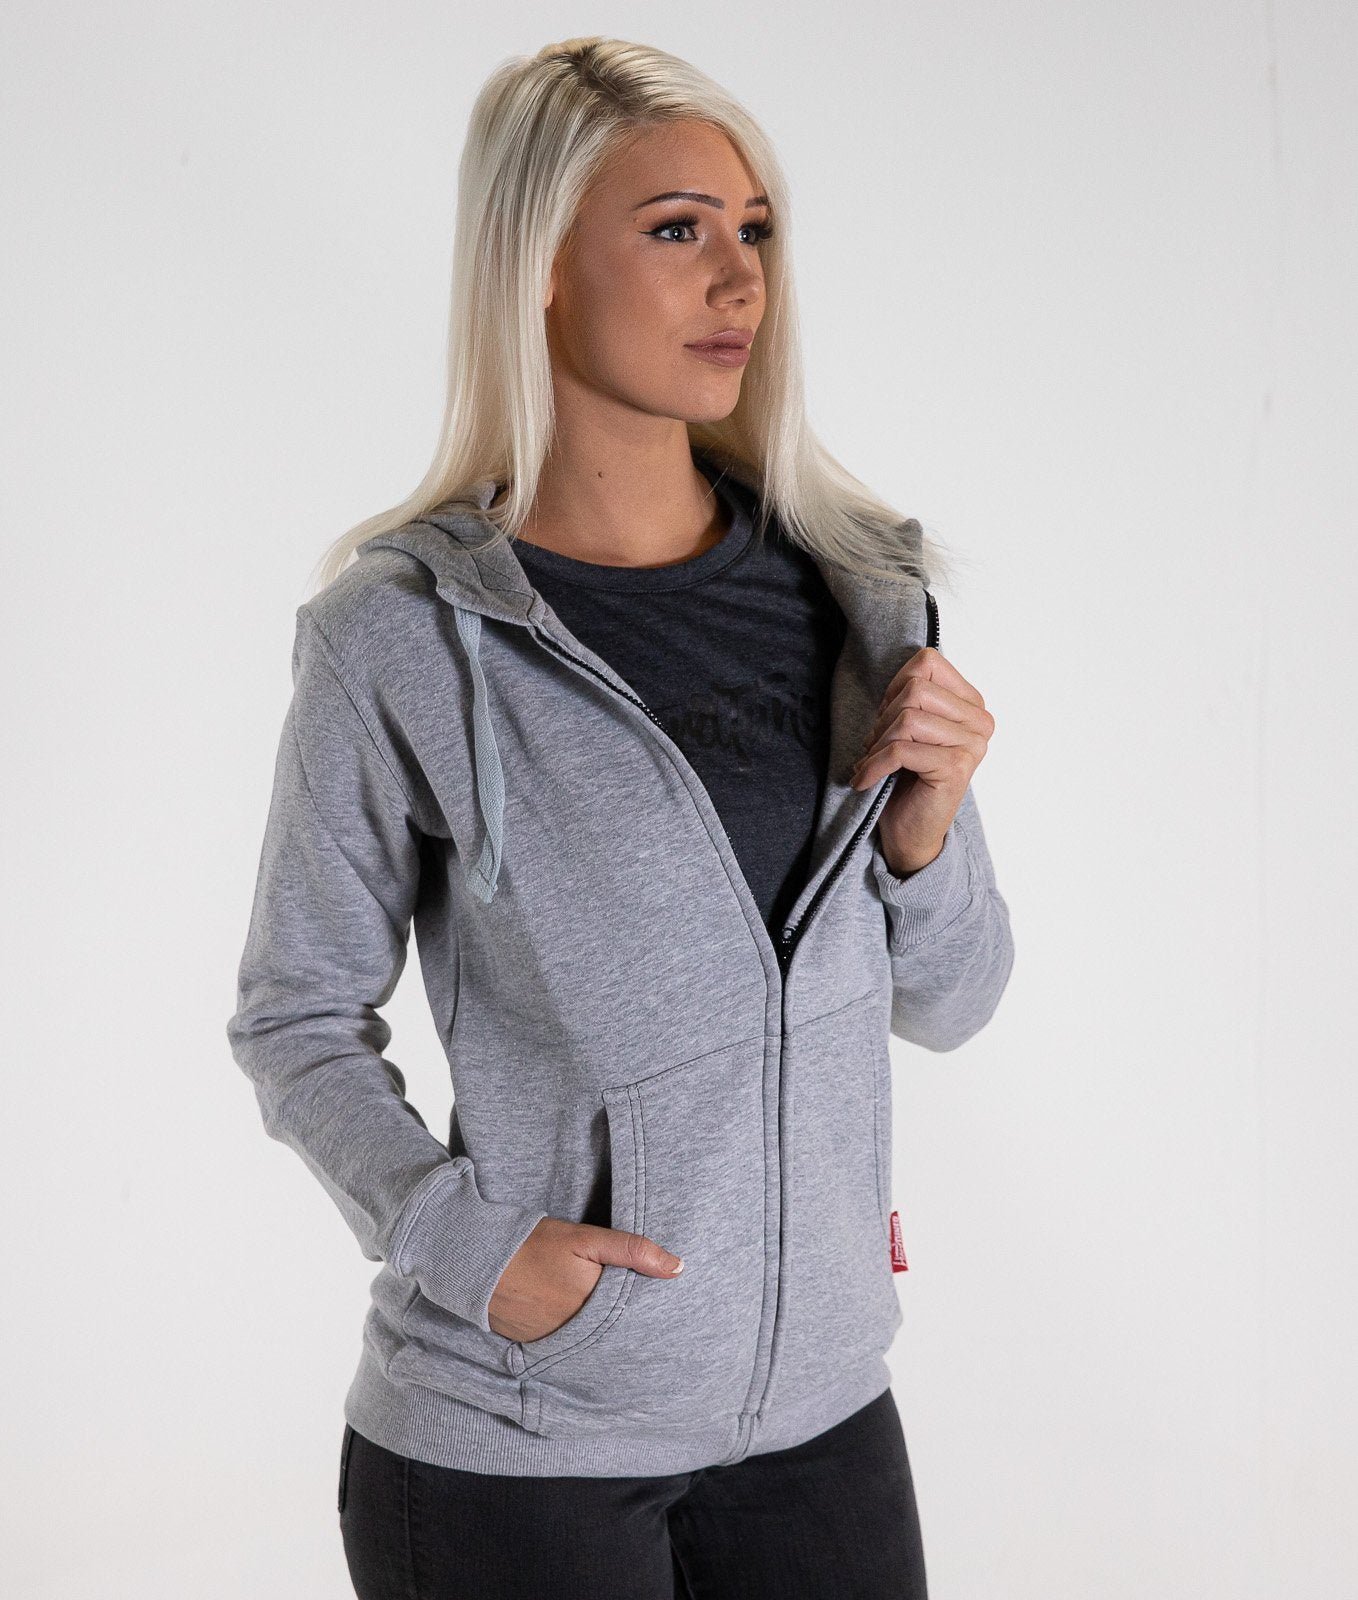 58c31629e2e33 HardTuned Brush Script Womens Hoodie - Gray